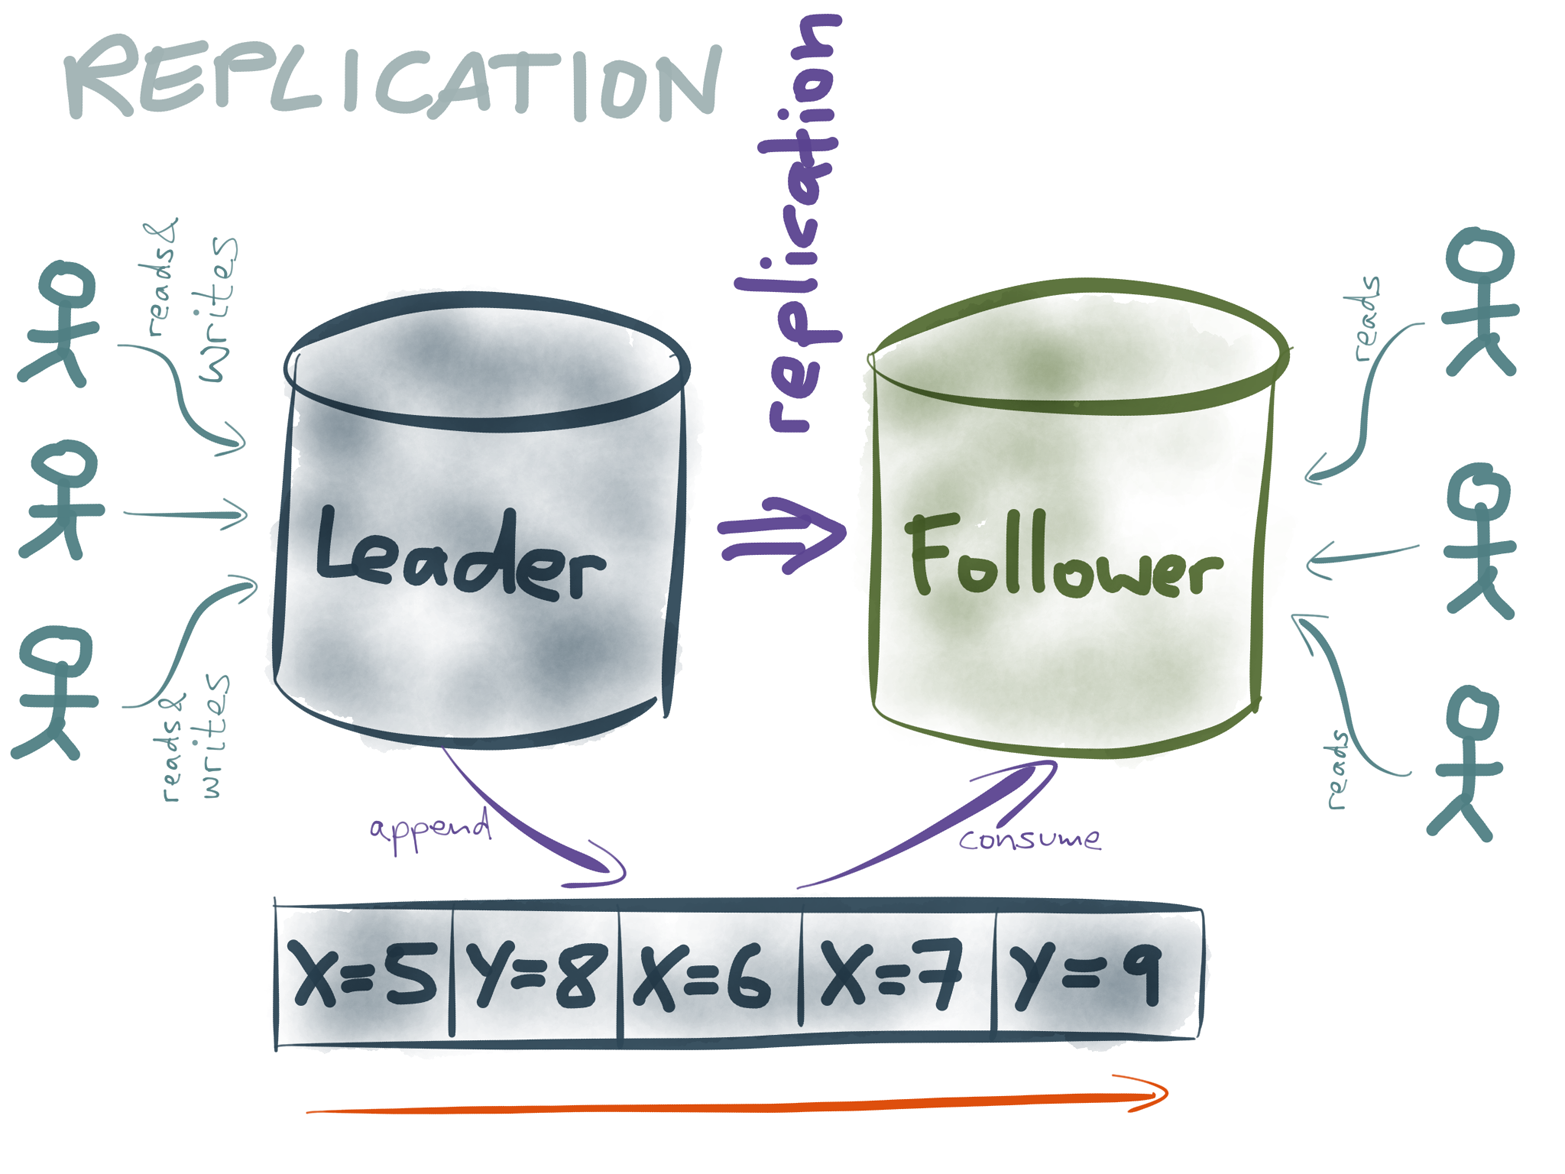 In leader-based replication, the leader processes writes, and uses a replication log to tell followers about writes.